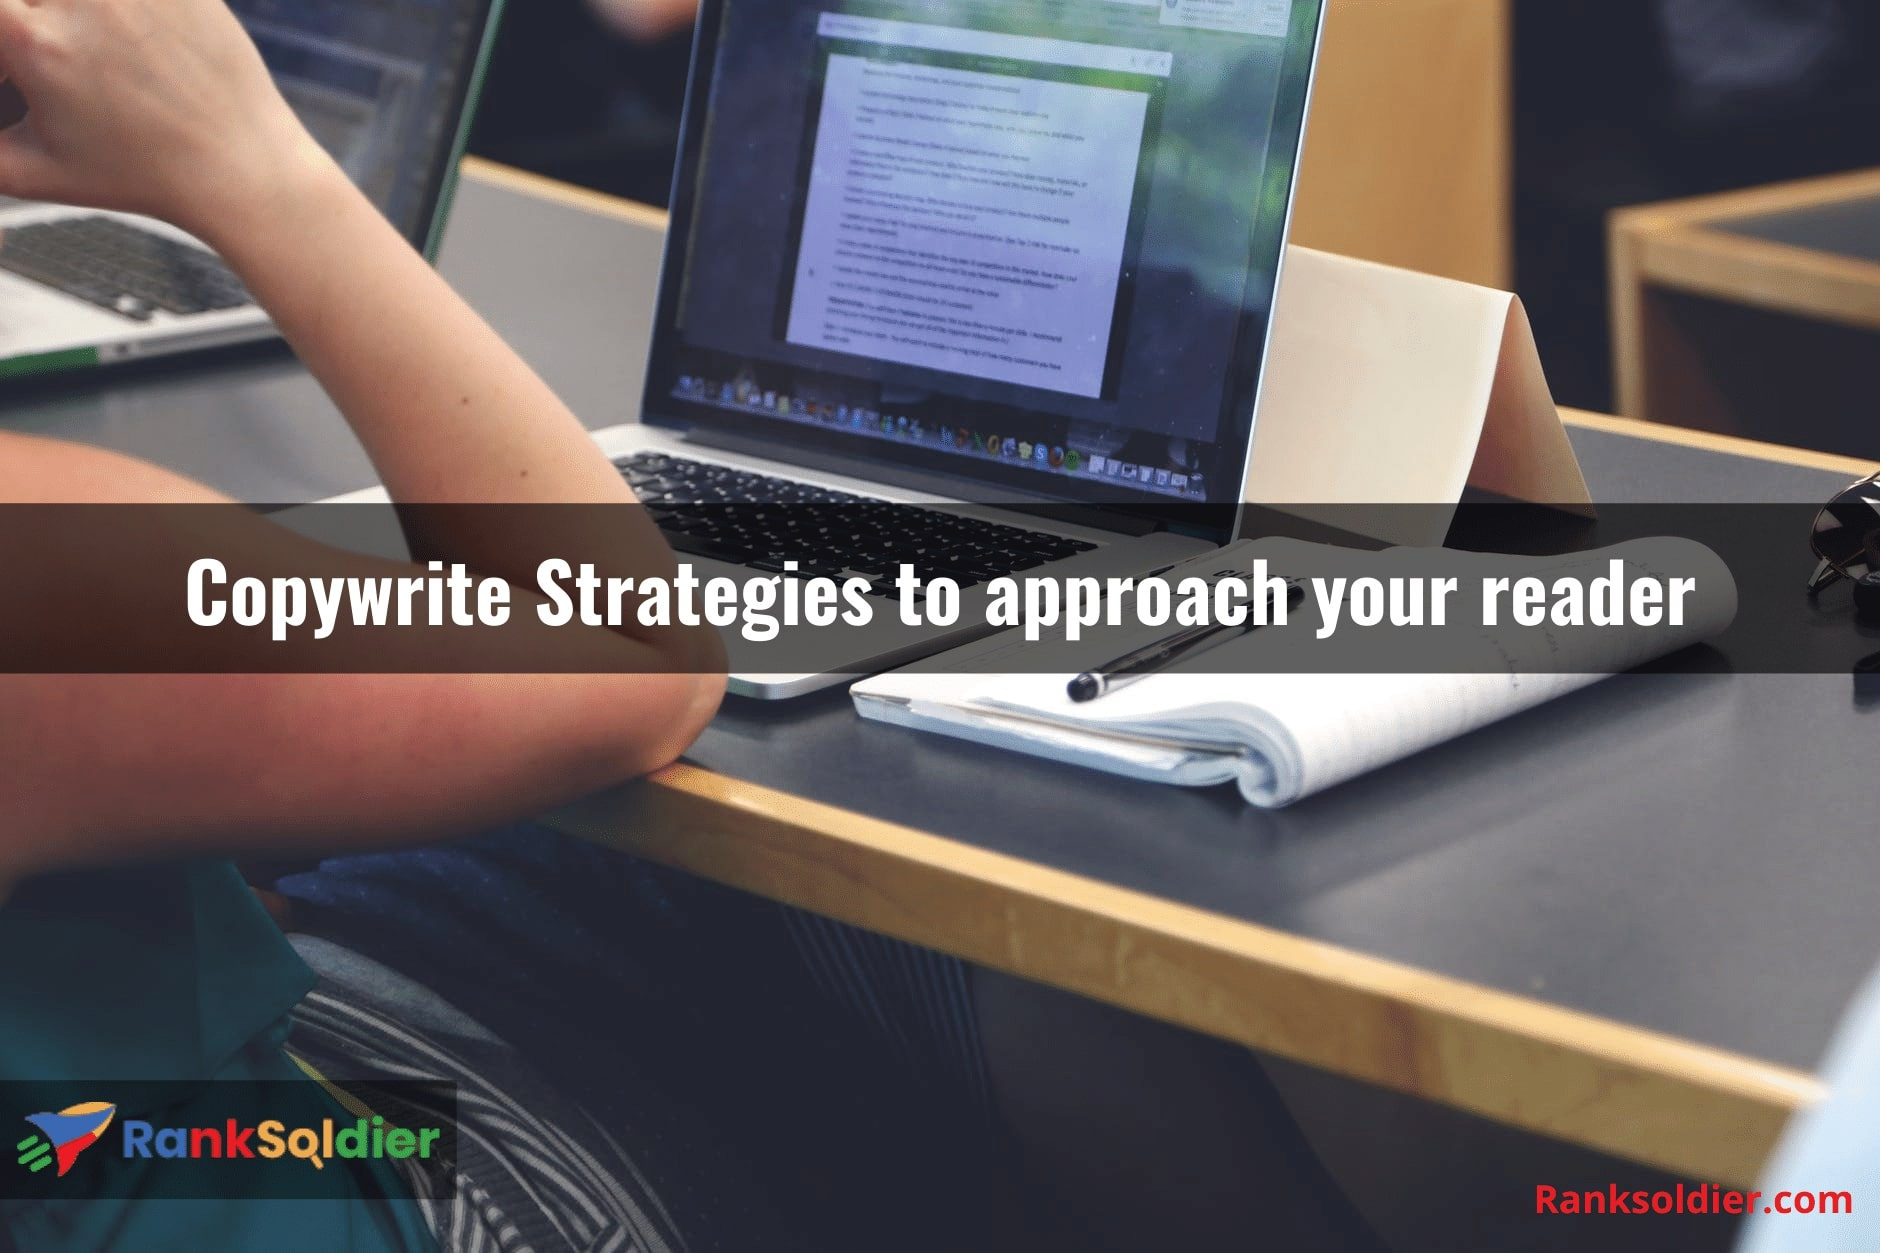 Copywrite Strategies to approach your reader